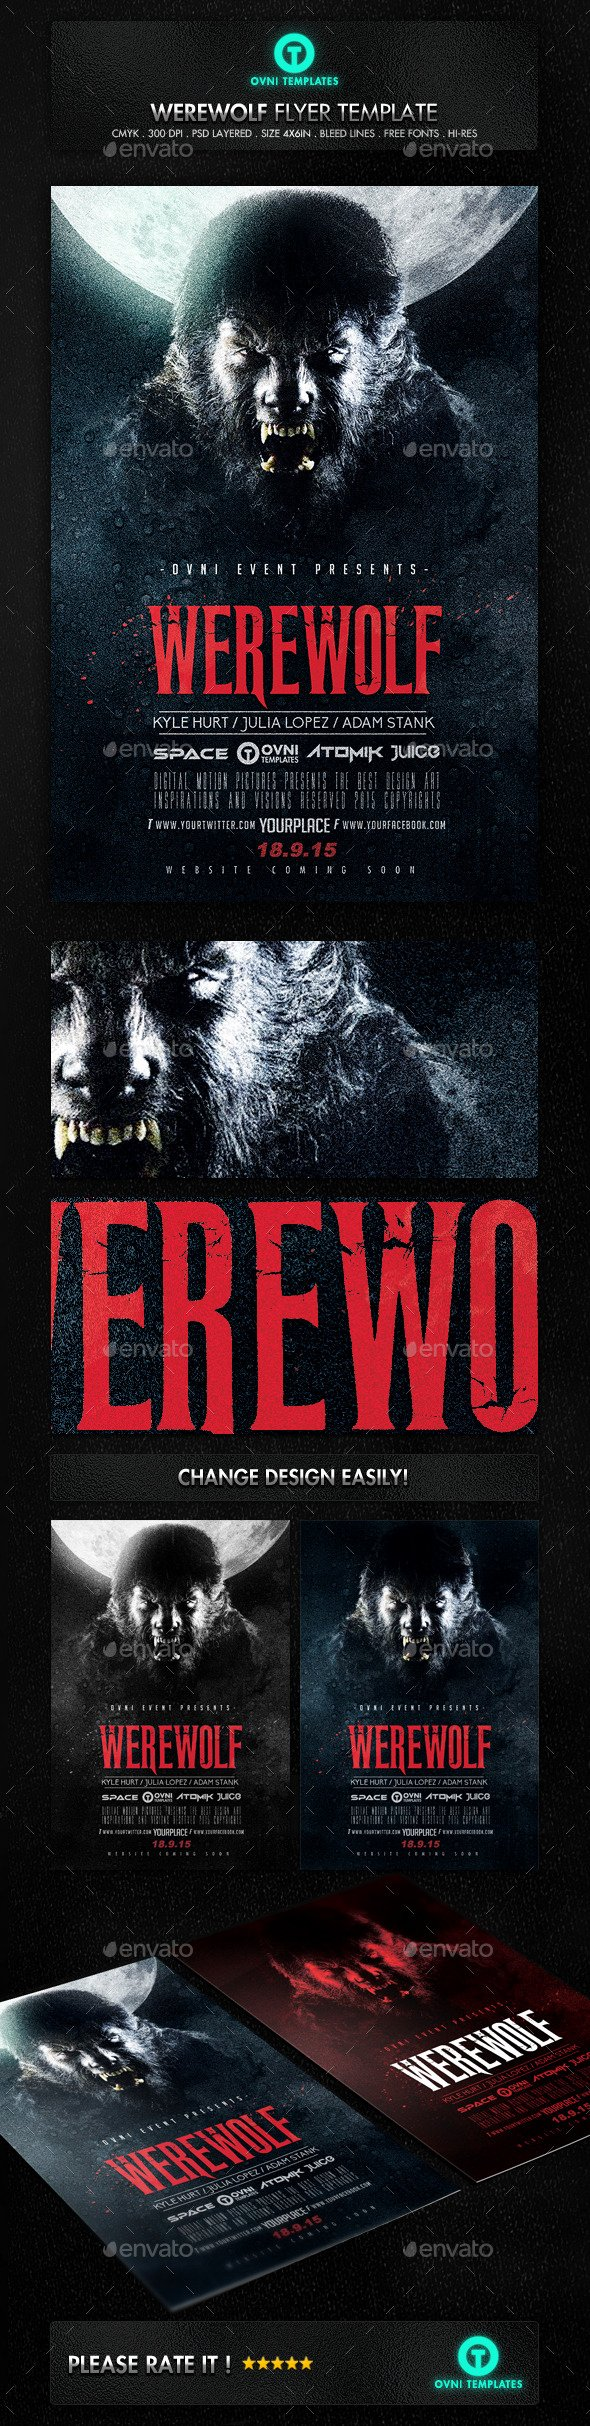 Horror Movie Poster Template Best Of Werewolf Dark Horror Movie Flyer Poster Template Psd